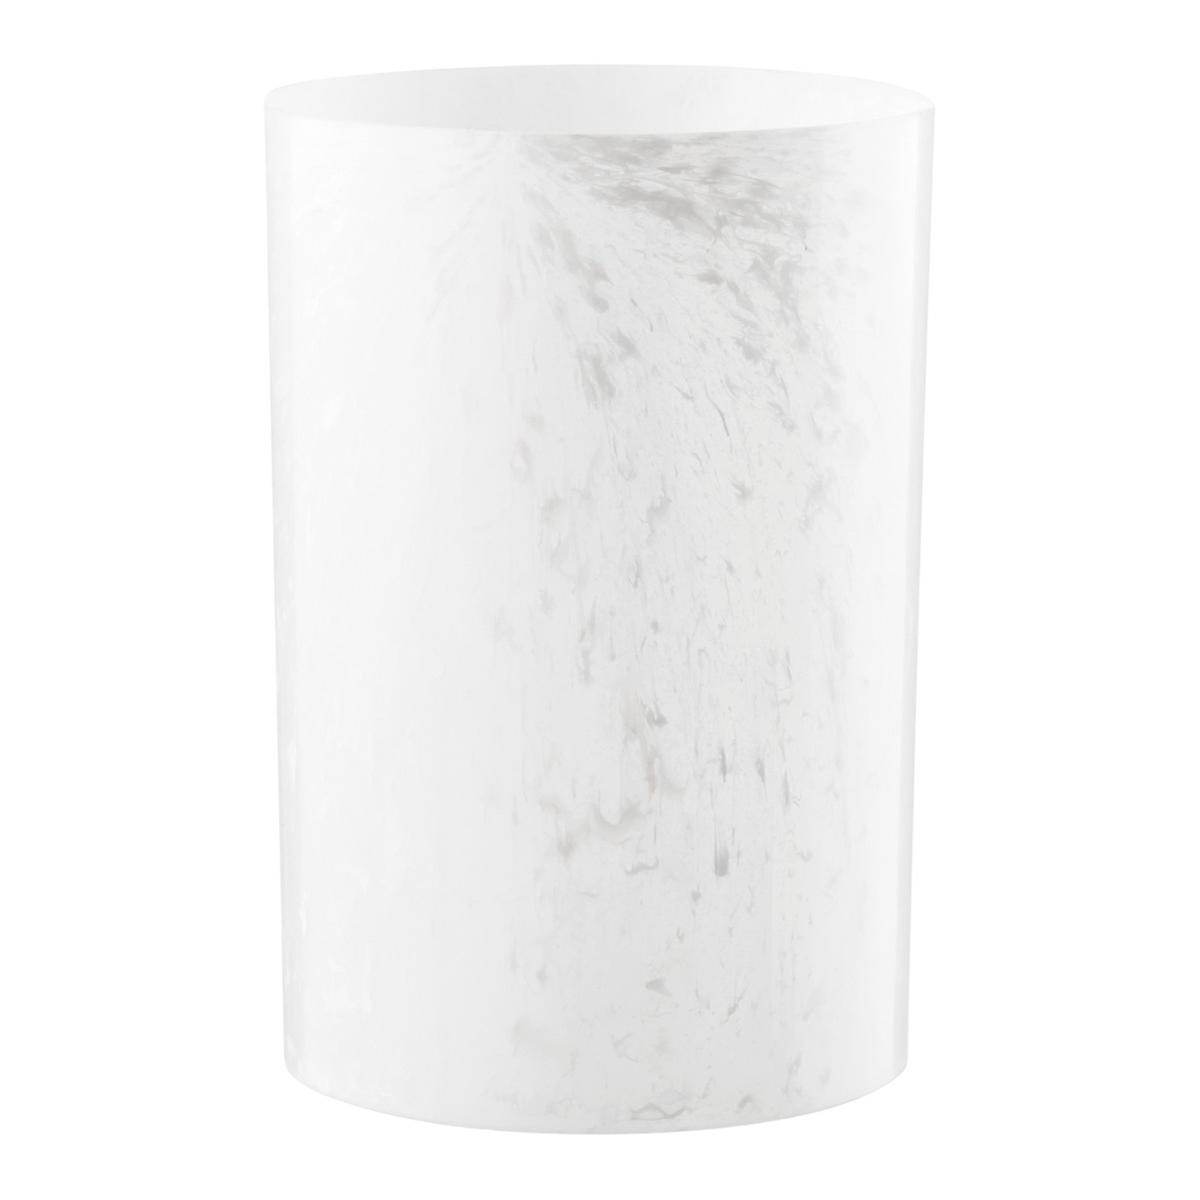 Umbra White Onyx Colonnade Trash Can